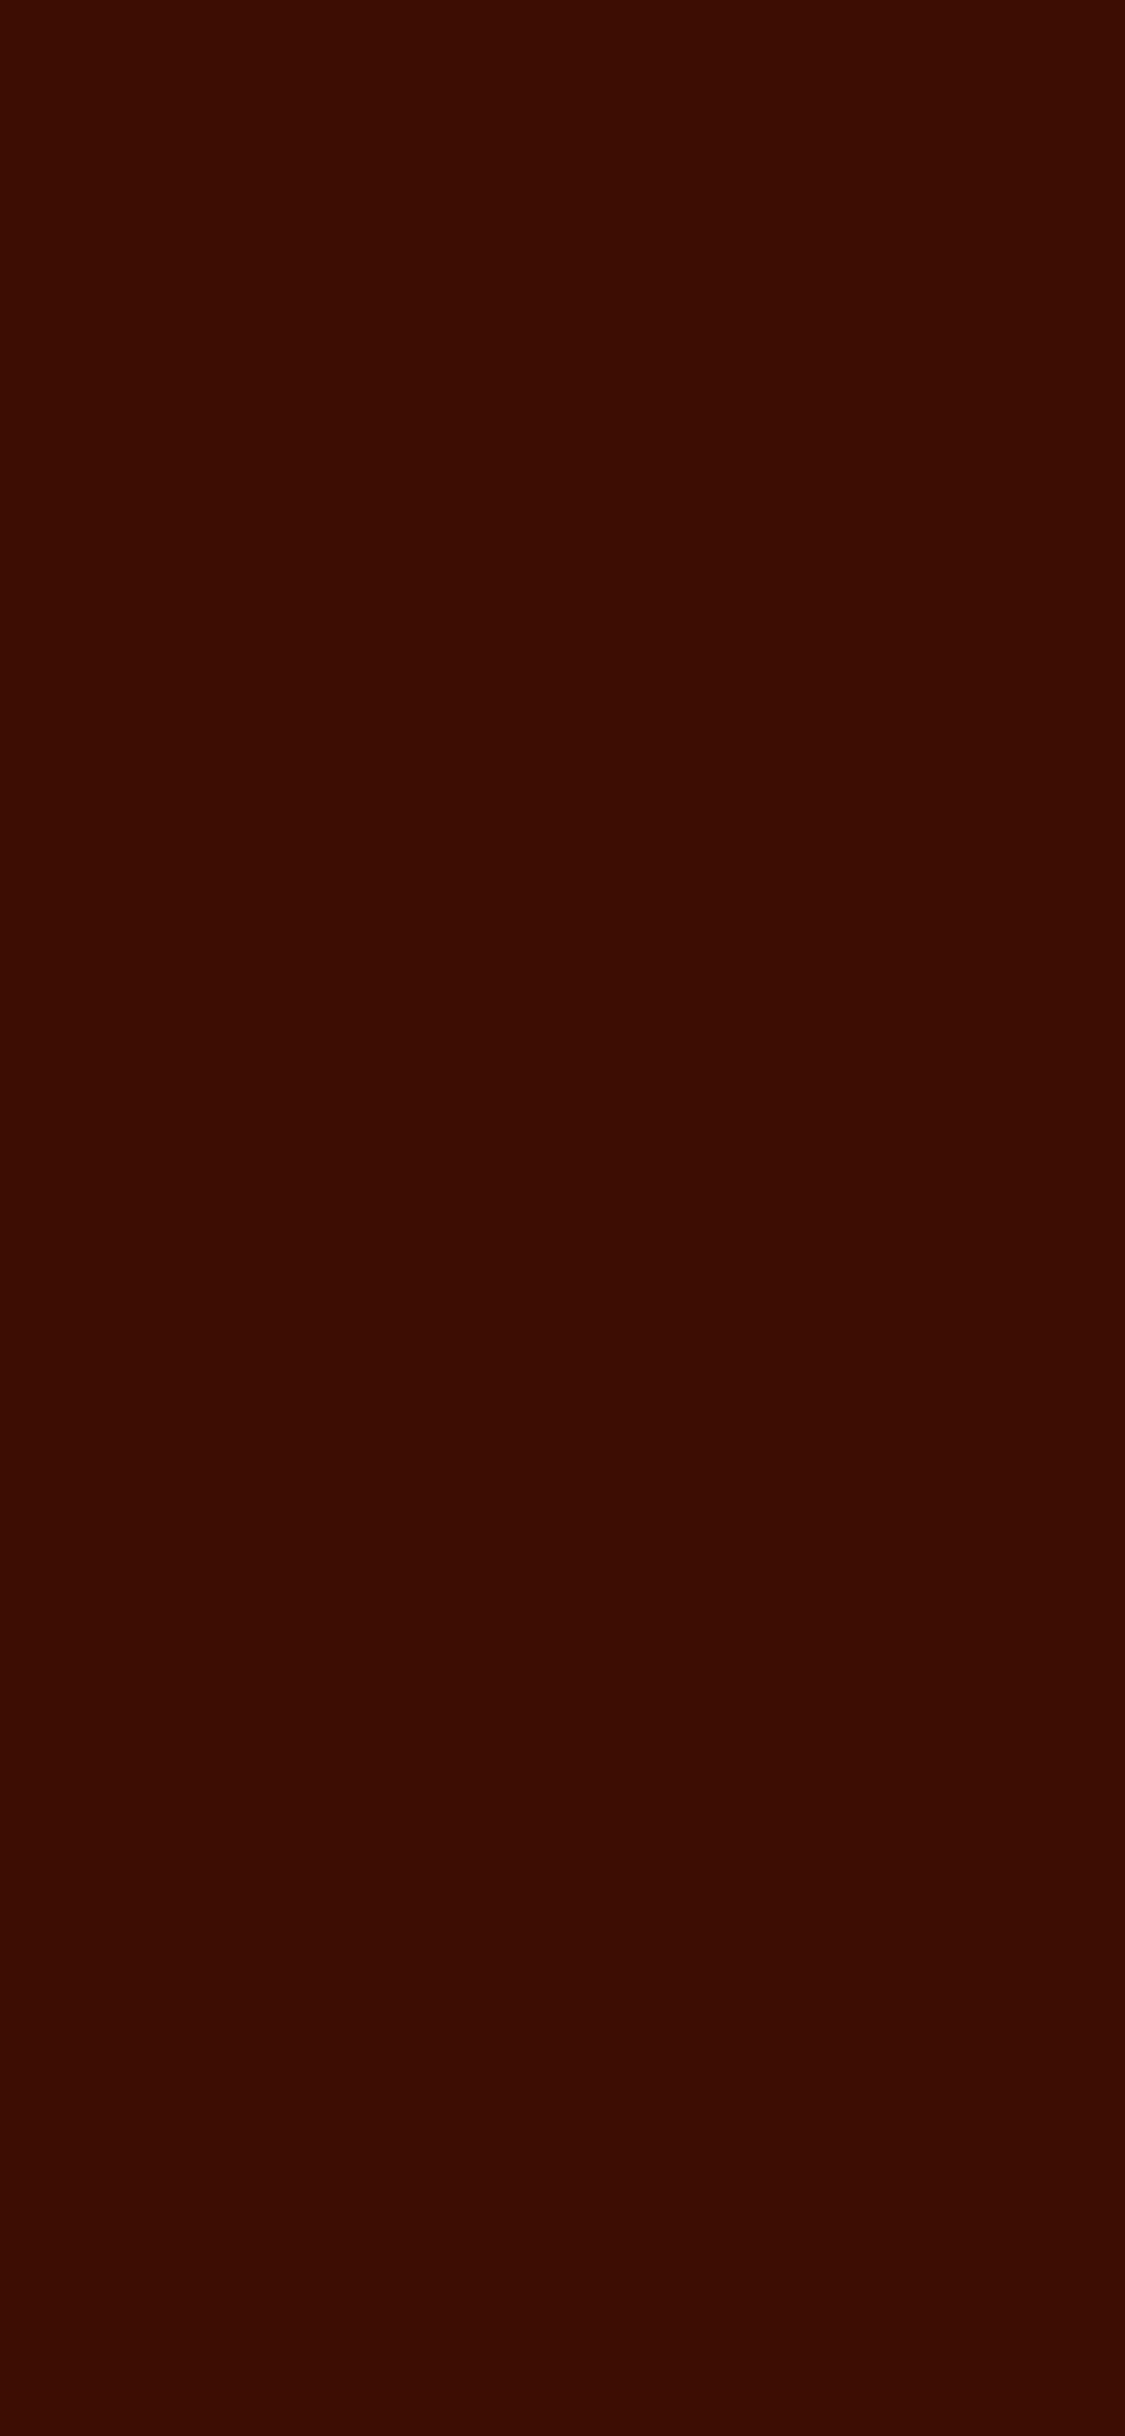 1125x2436 Black Bean Solid Color Background